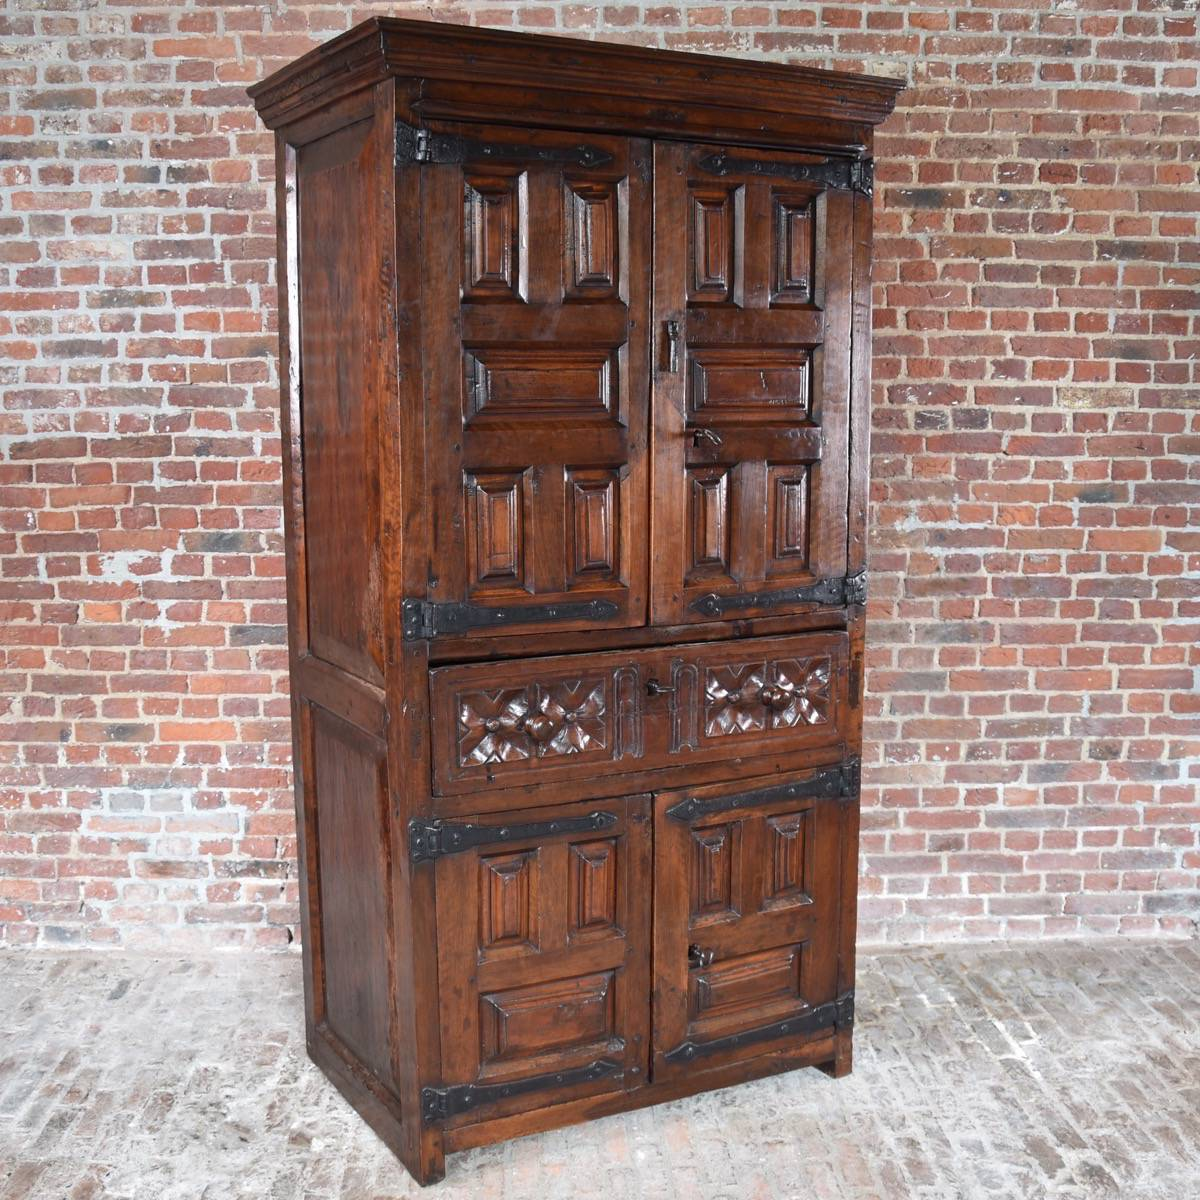 Le Meilleur South European Walnut 4 Door Cabinet Ce Mois Ci